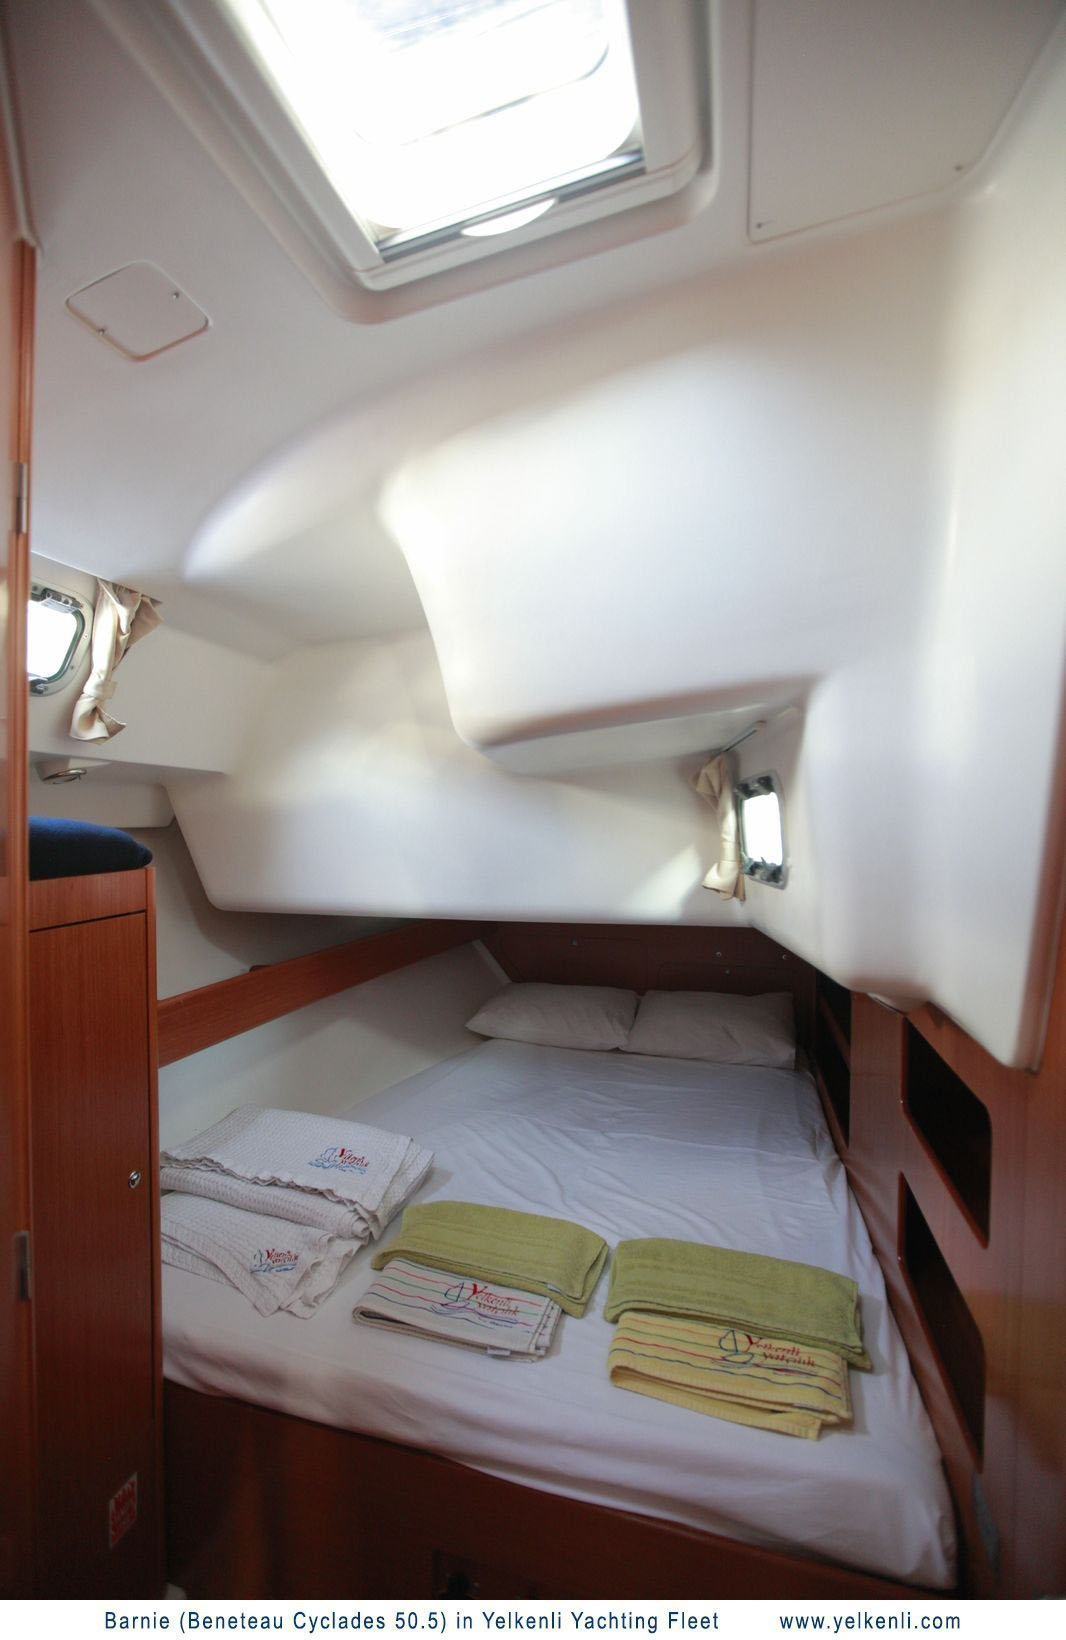 Cyclades 50.5 (Barnie) Aft Starboard Cabin - 4